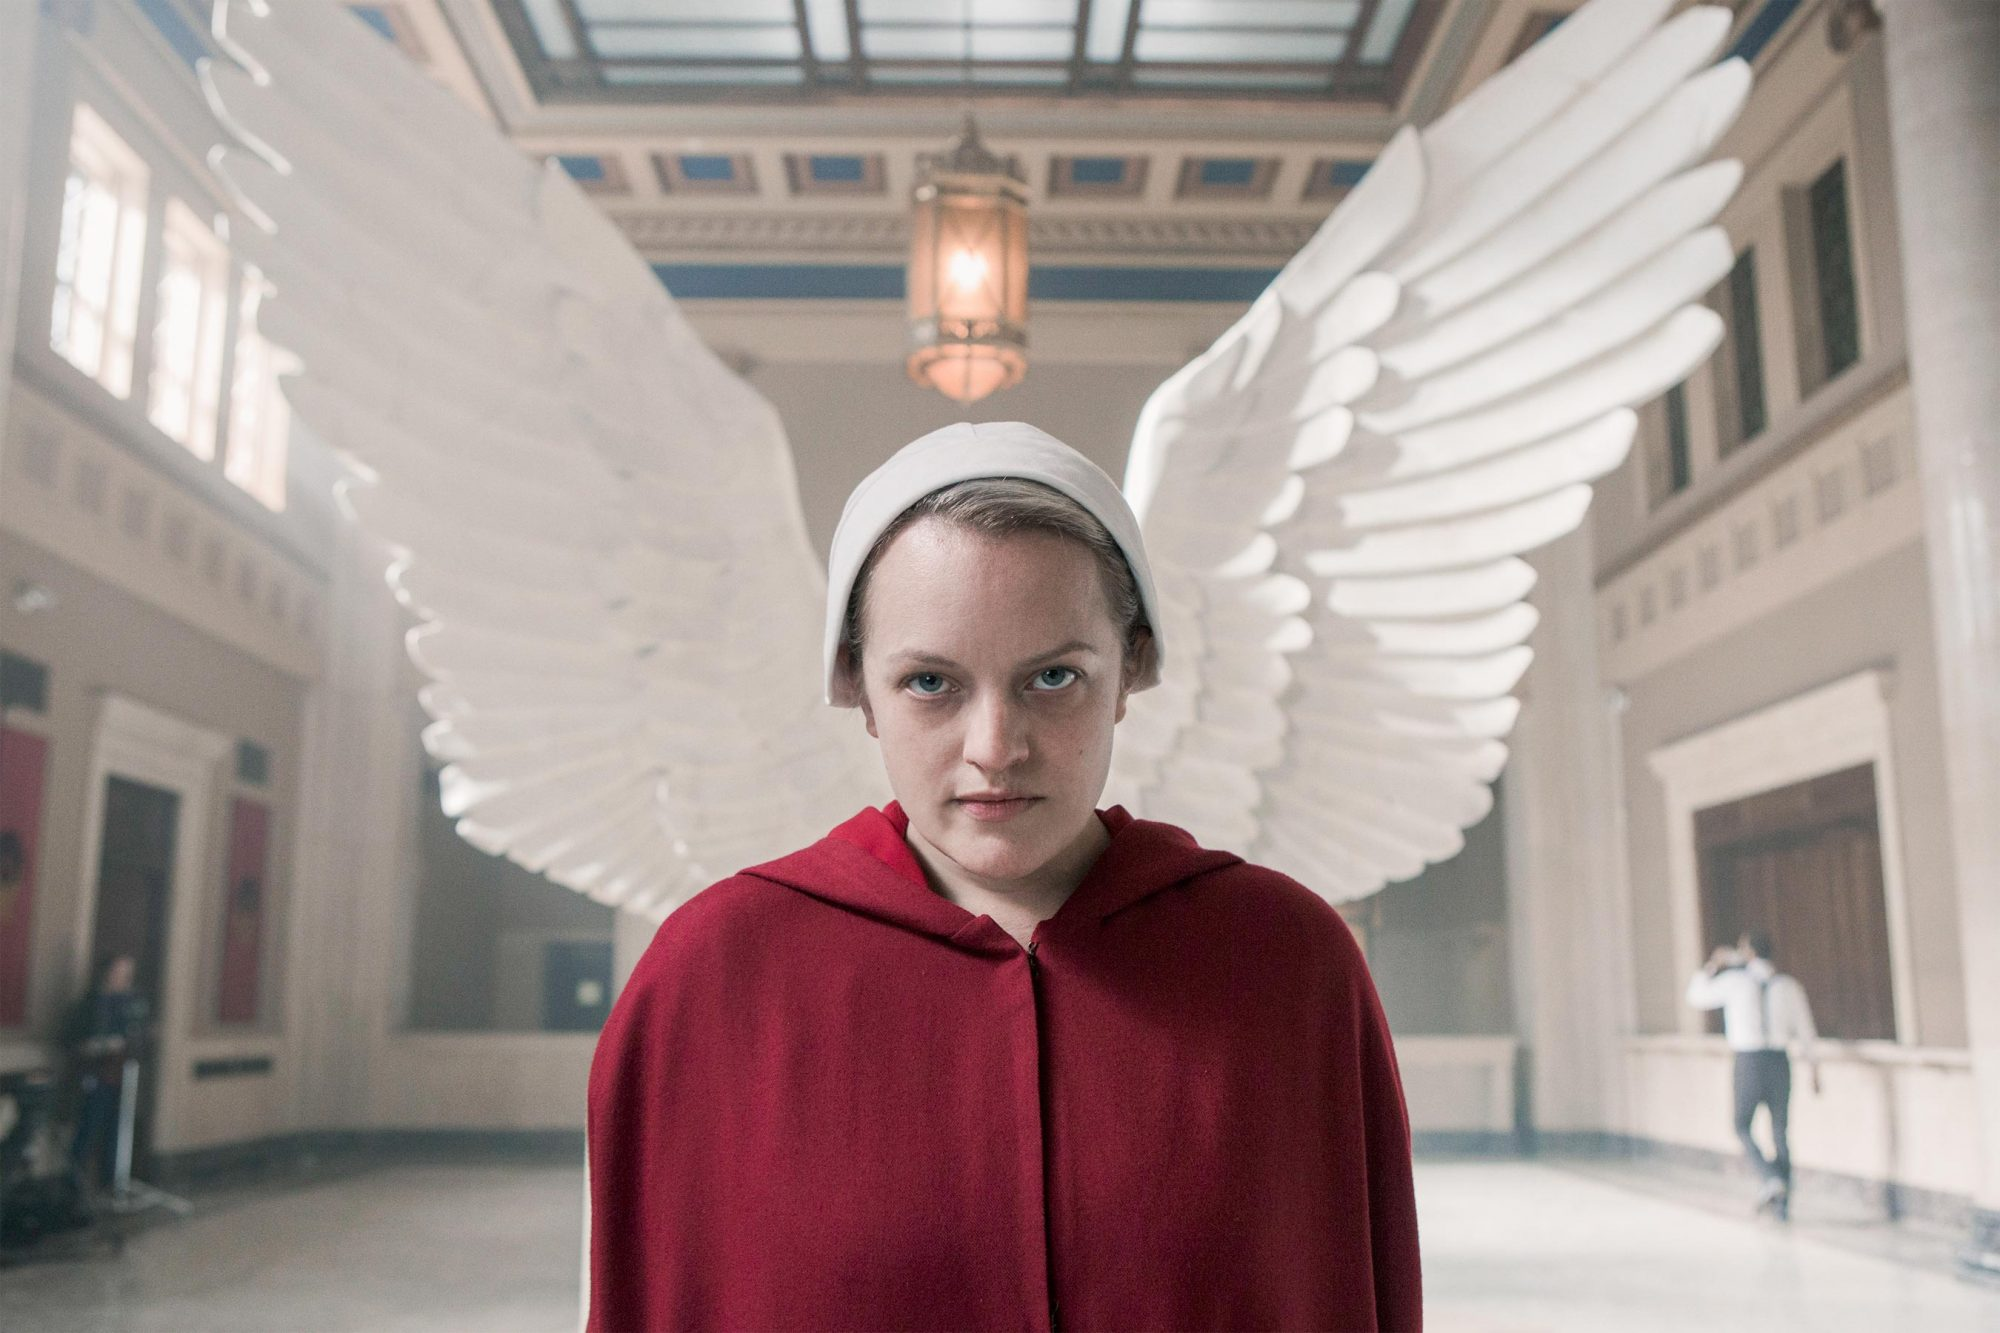 """The Handmaid's Tale -- """"Household"""" - Episode 306 -- June accompanies the Waterfords to Washington D.C., where a powerful family offers a glimpse of the future of Gilead. June makes an important connection as she attempts to protect Nichole. June (Elisabeth Moss), shown. (Photo by: Sophie Giraud/Hulu)"""